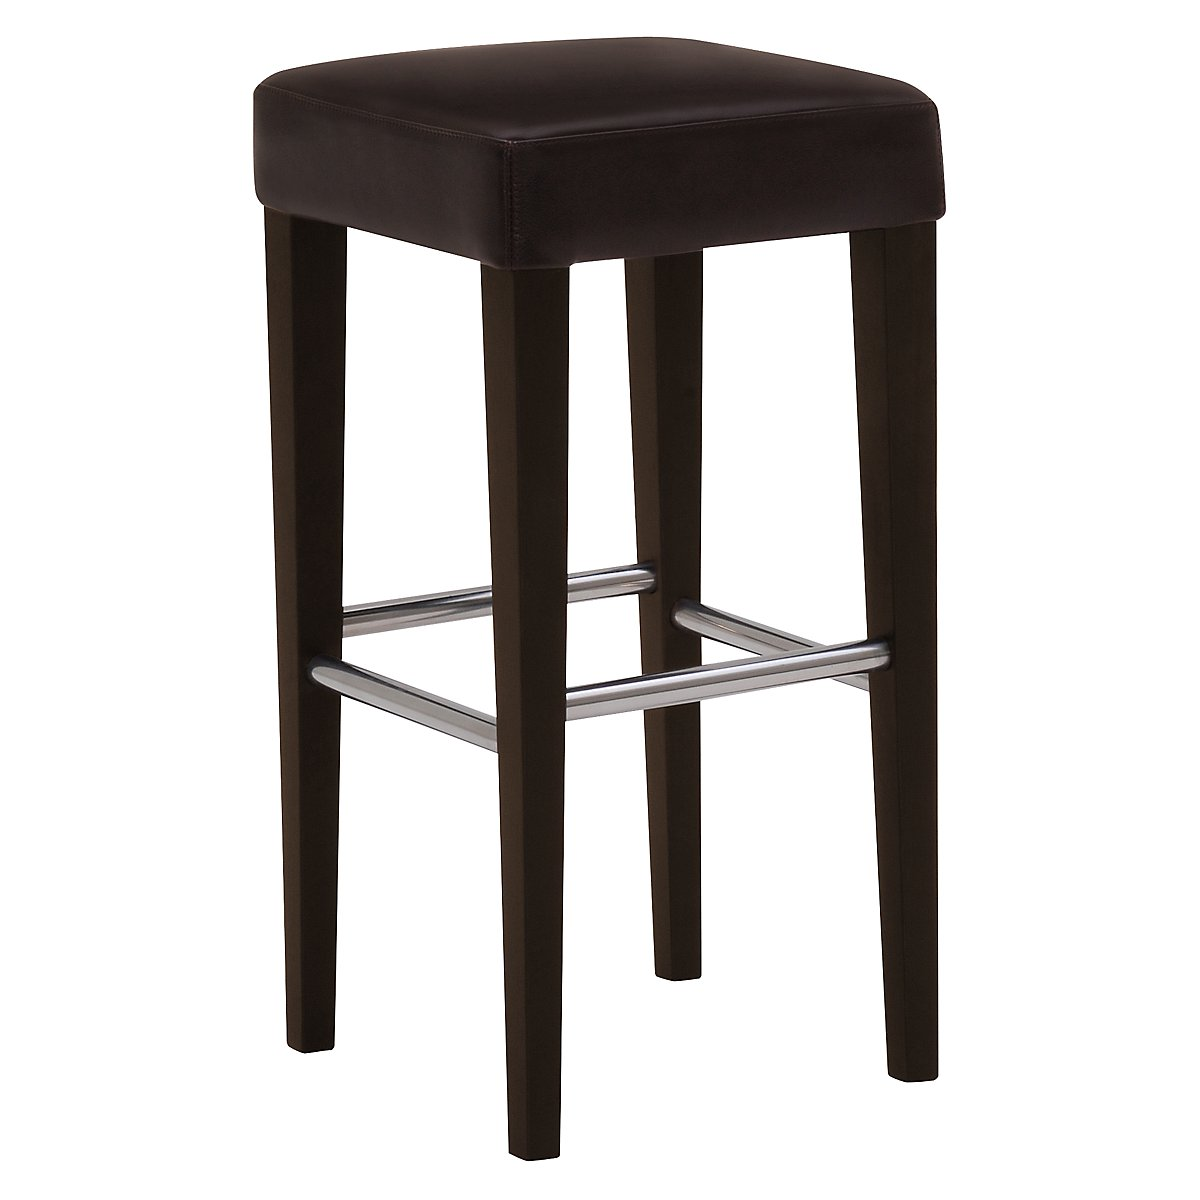 "Kayla Dark Brown 30"" Bonded Leather Barstool"